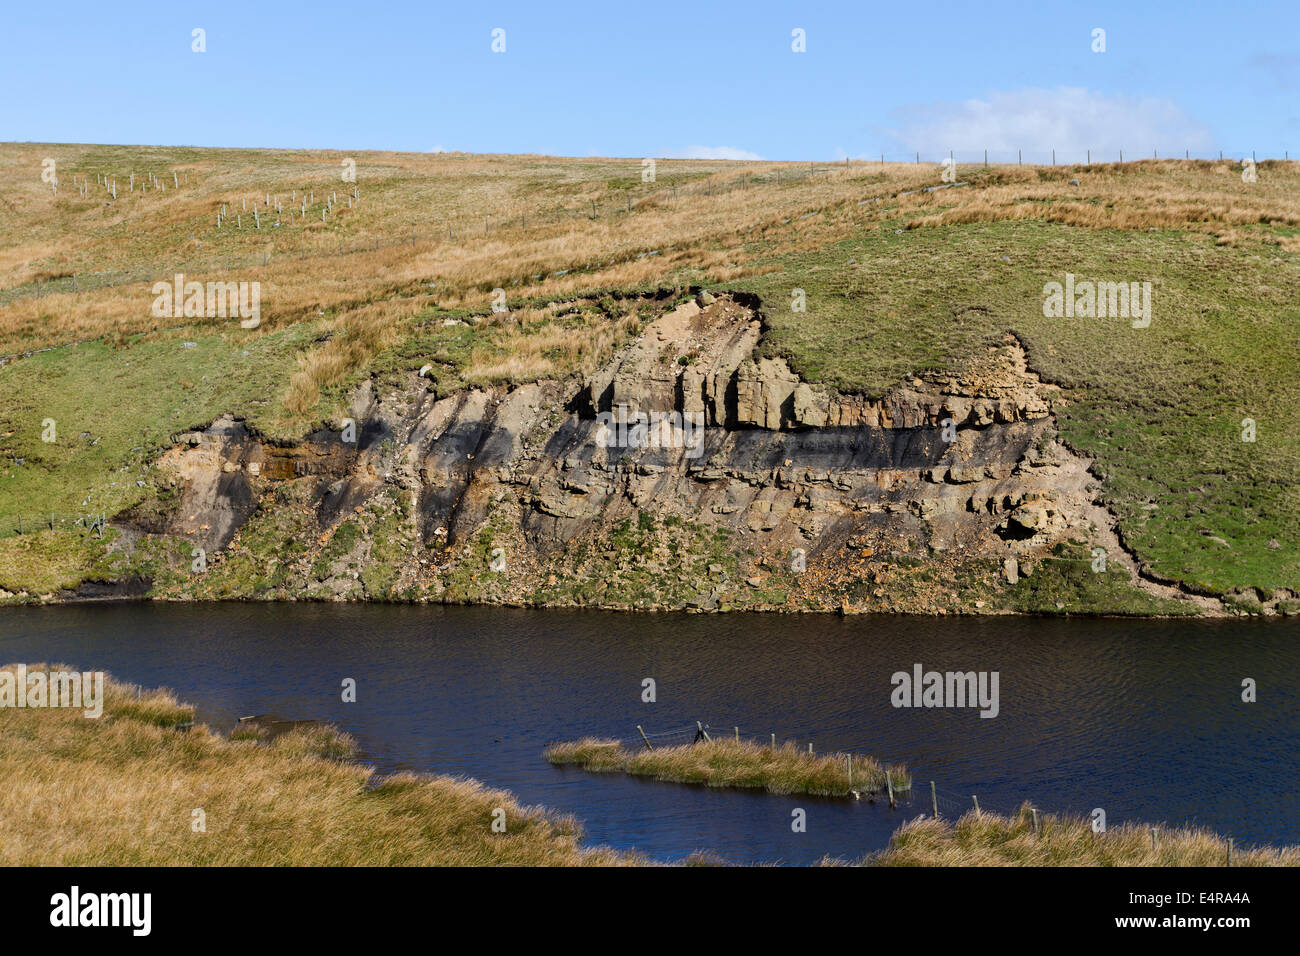 Sedimentay Rocks with Shale Band Next to a Water Supply North Pennines UK - Stock Image